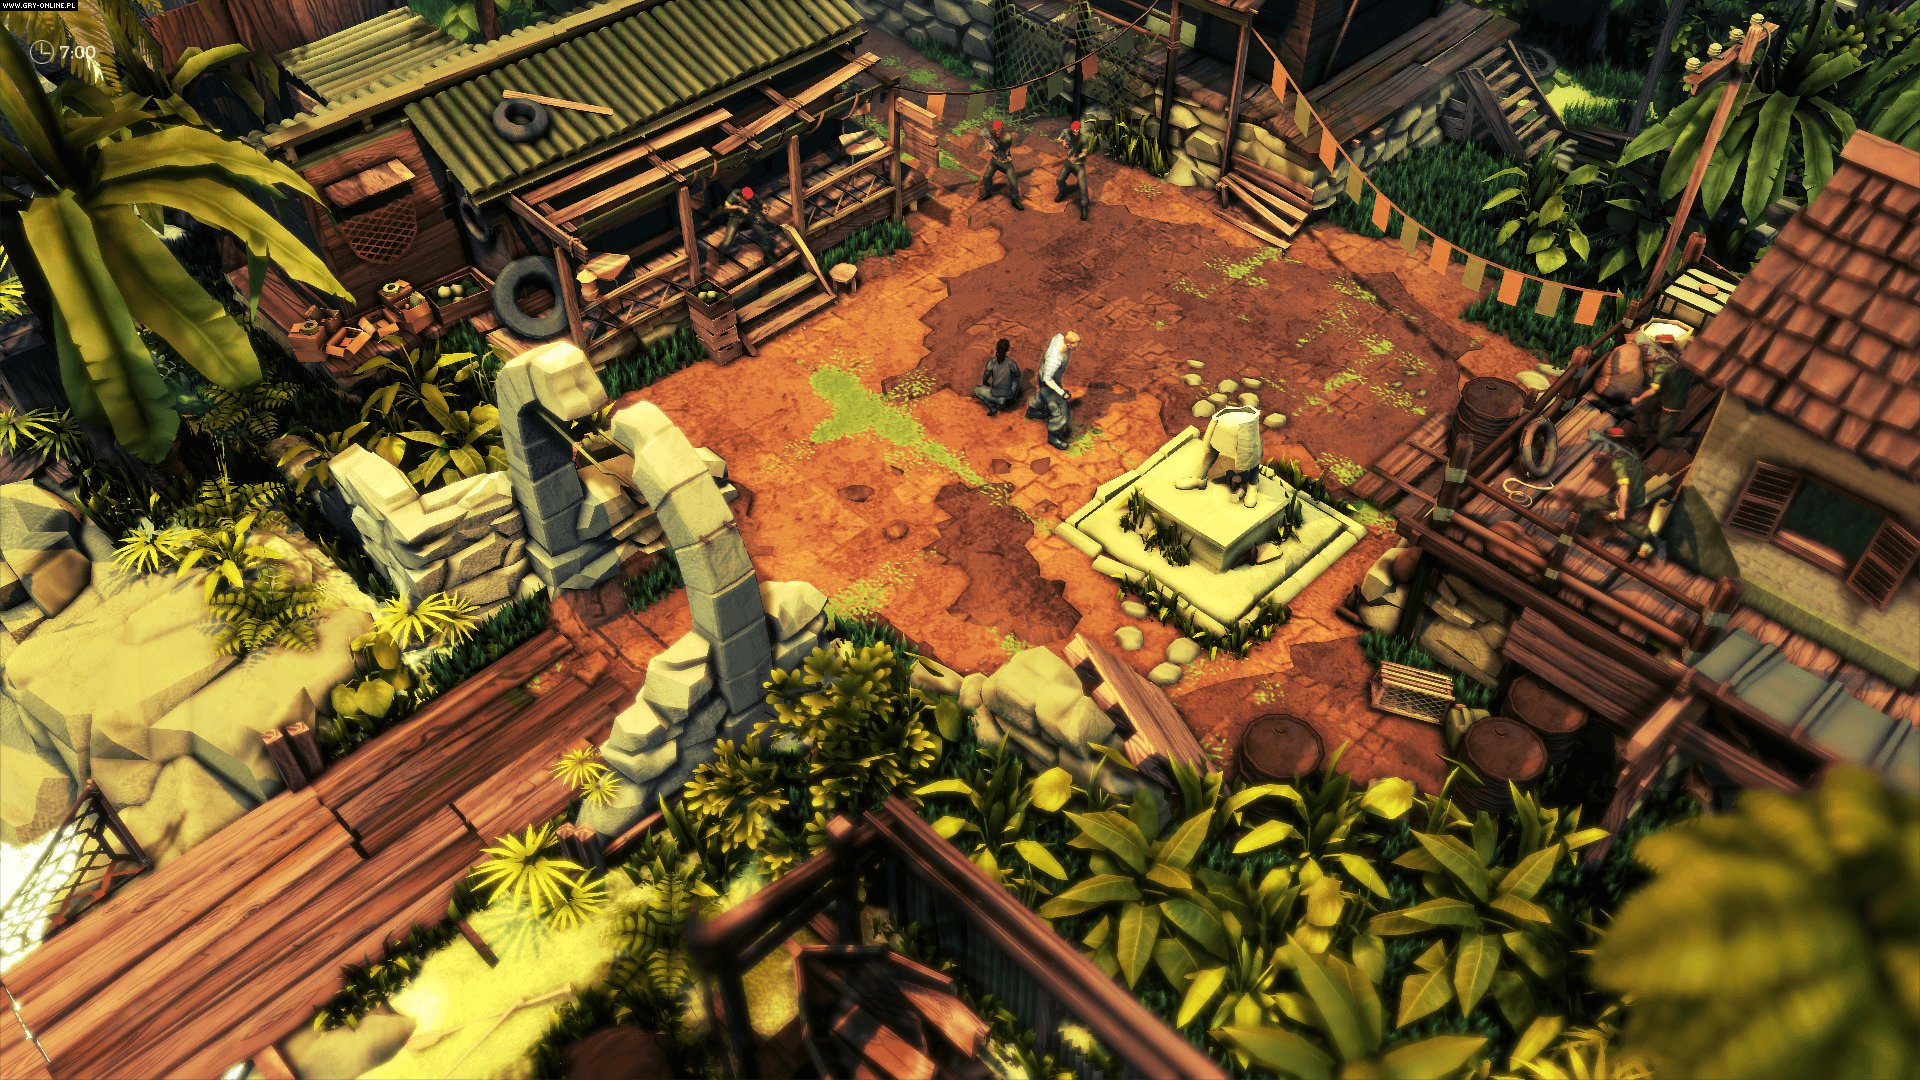 Jagged Alliance: Rage! PC, PS4, XONE Games Image 5/9, HandyGames, THQ Nordic / Nordic Games